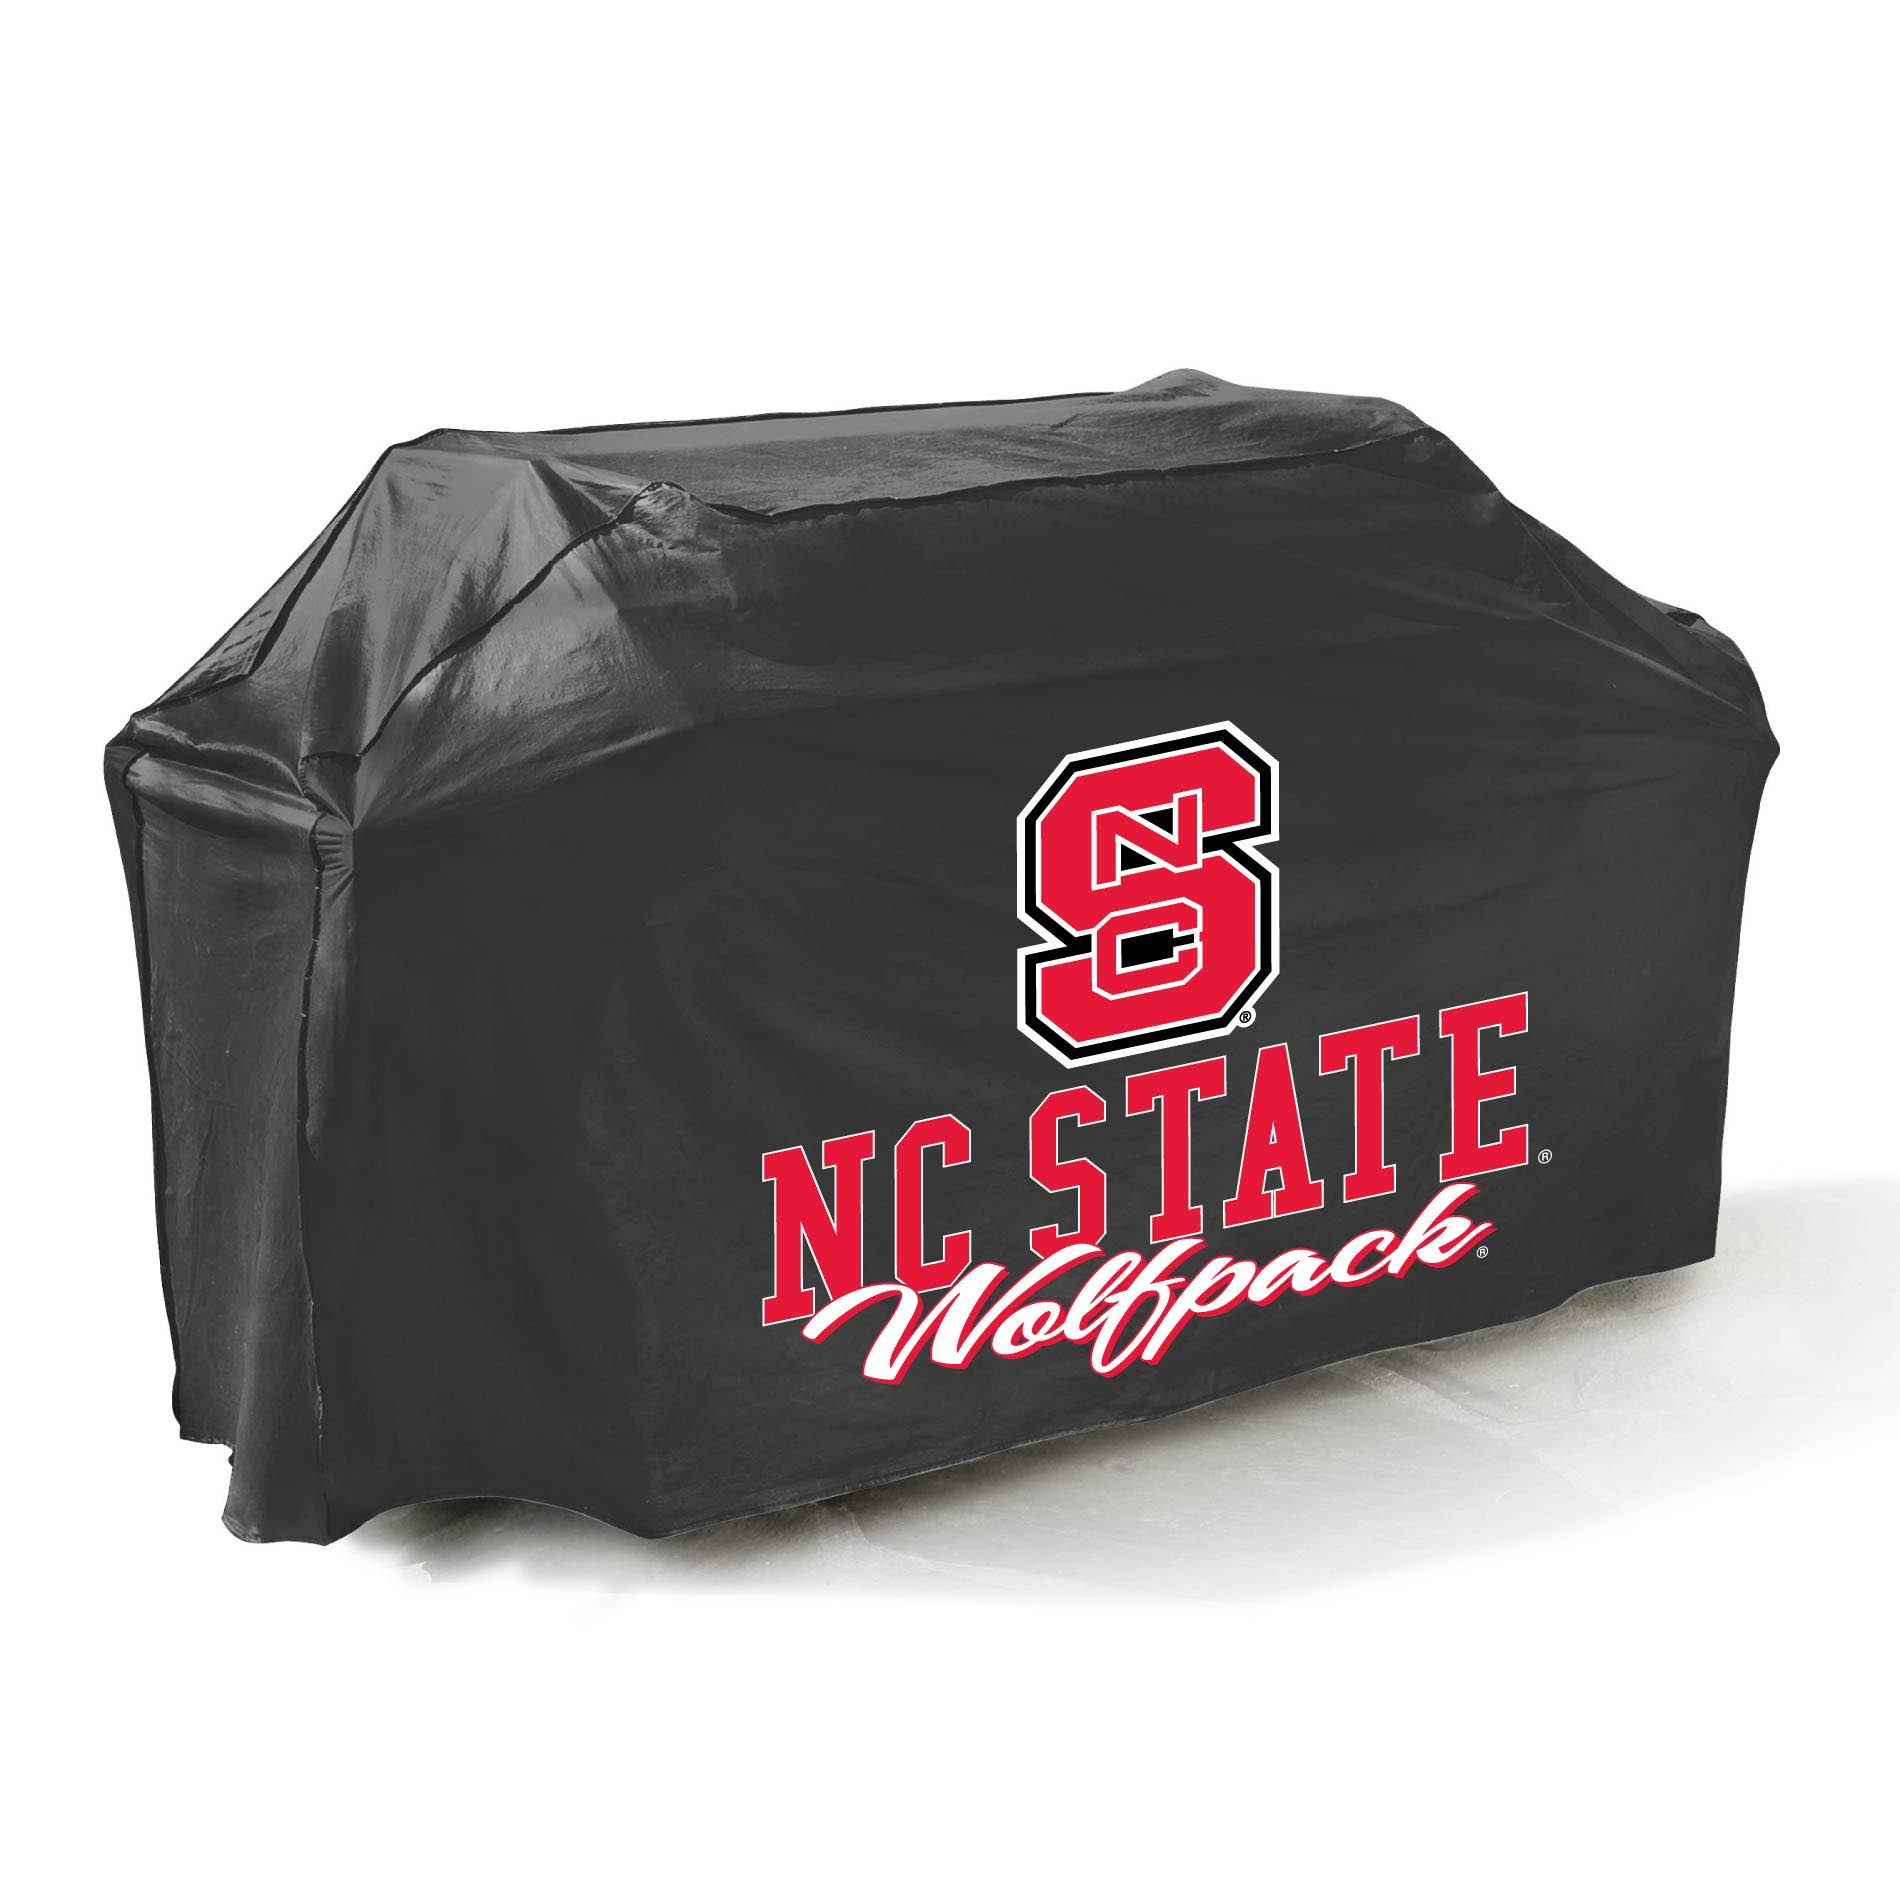 North Carolina State Wolfpack 65-inch Gas Grill Cover